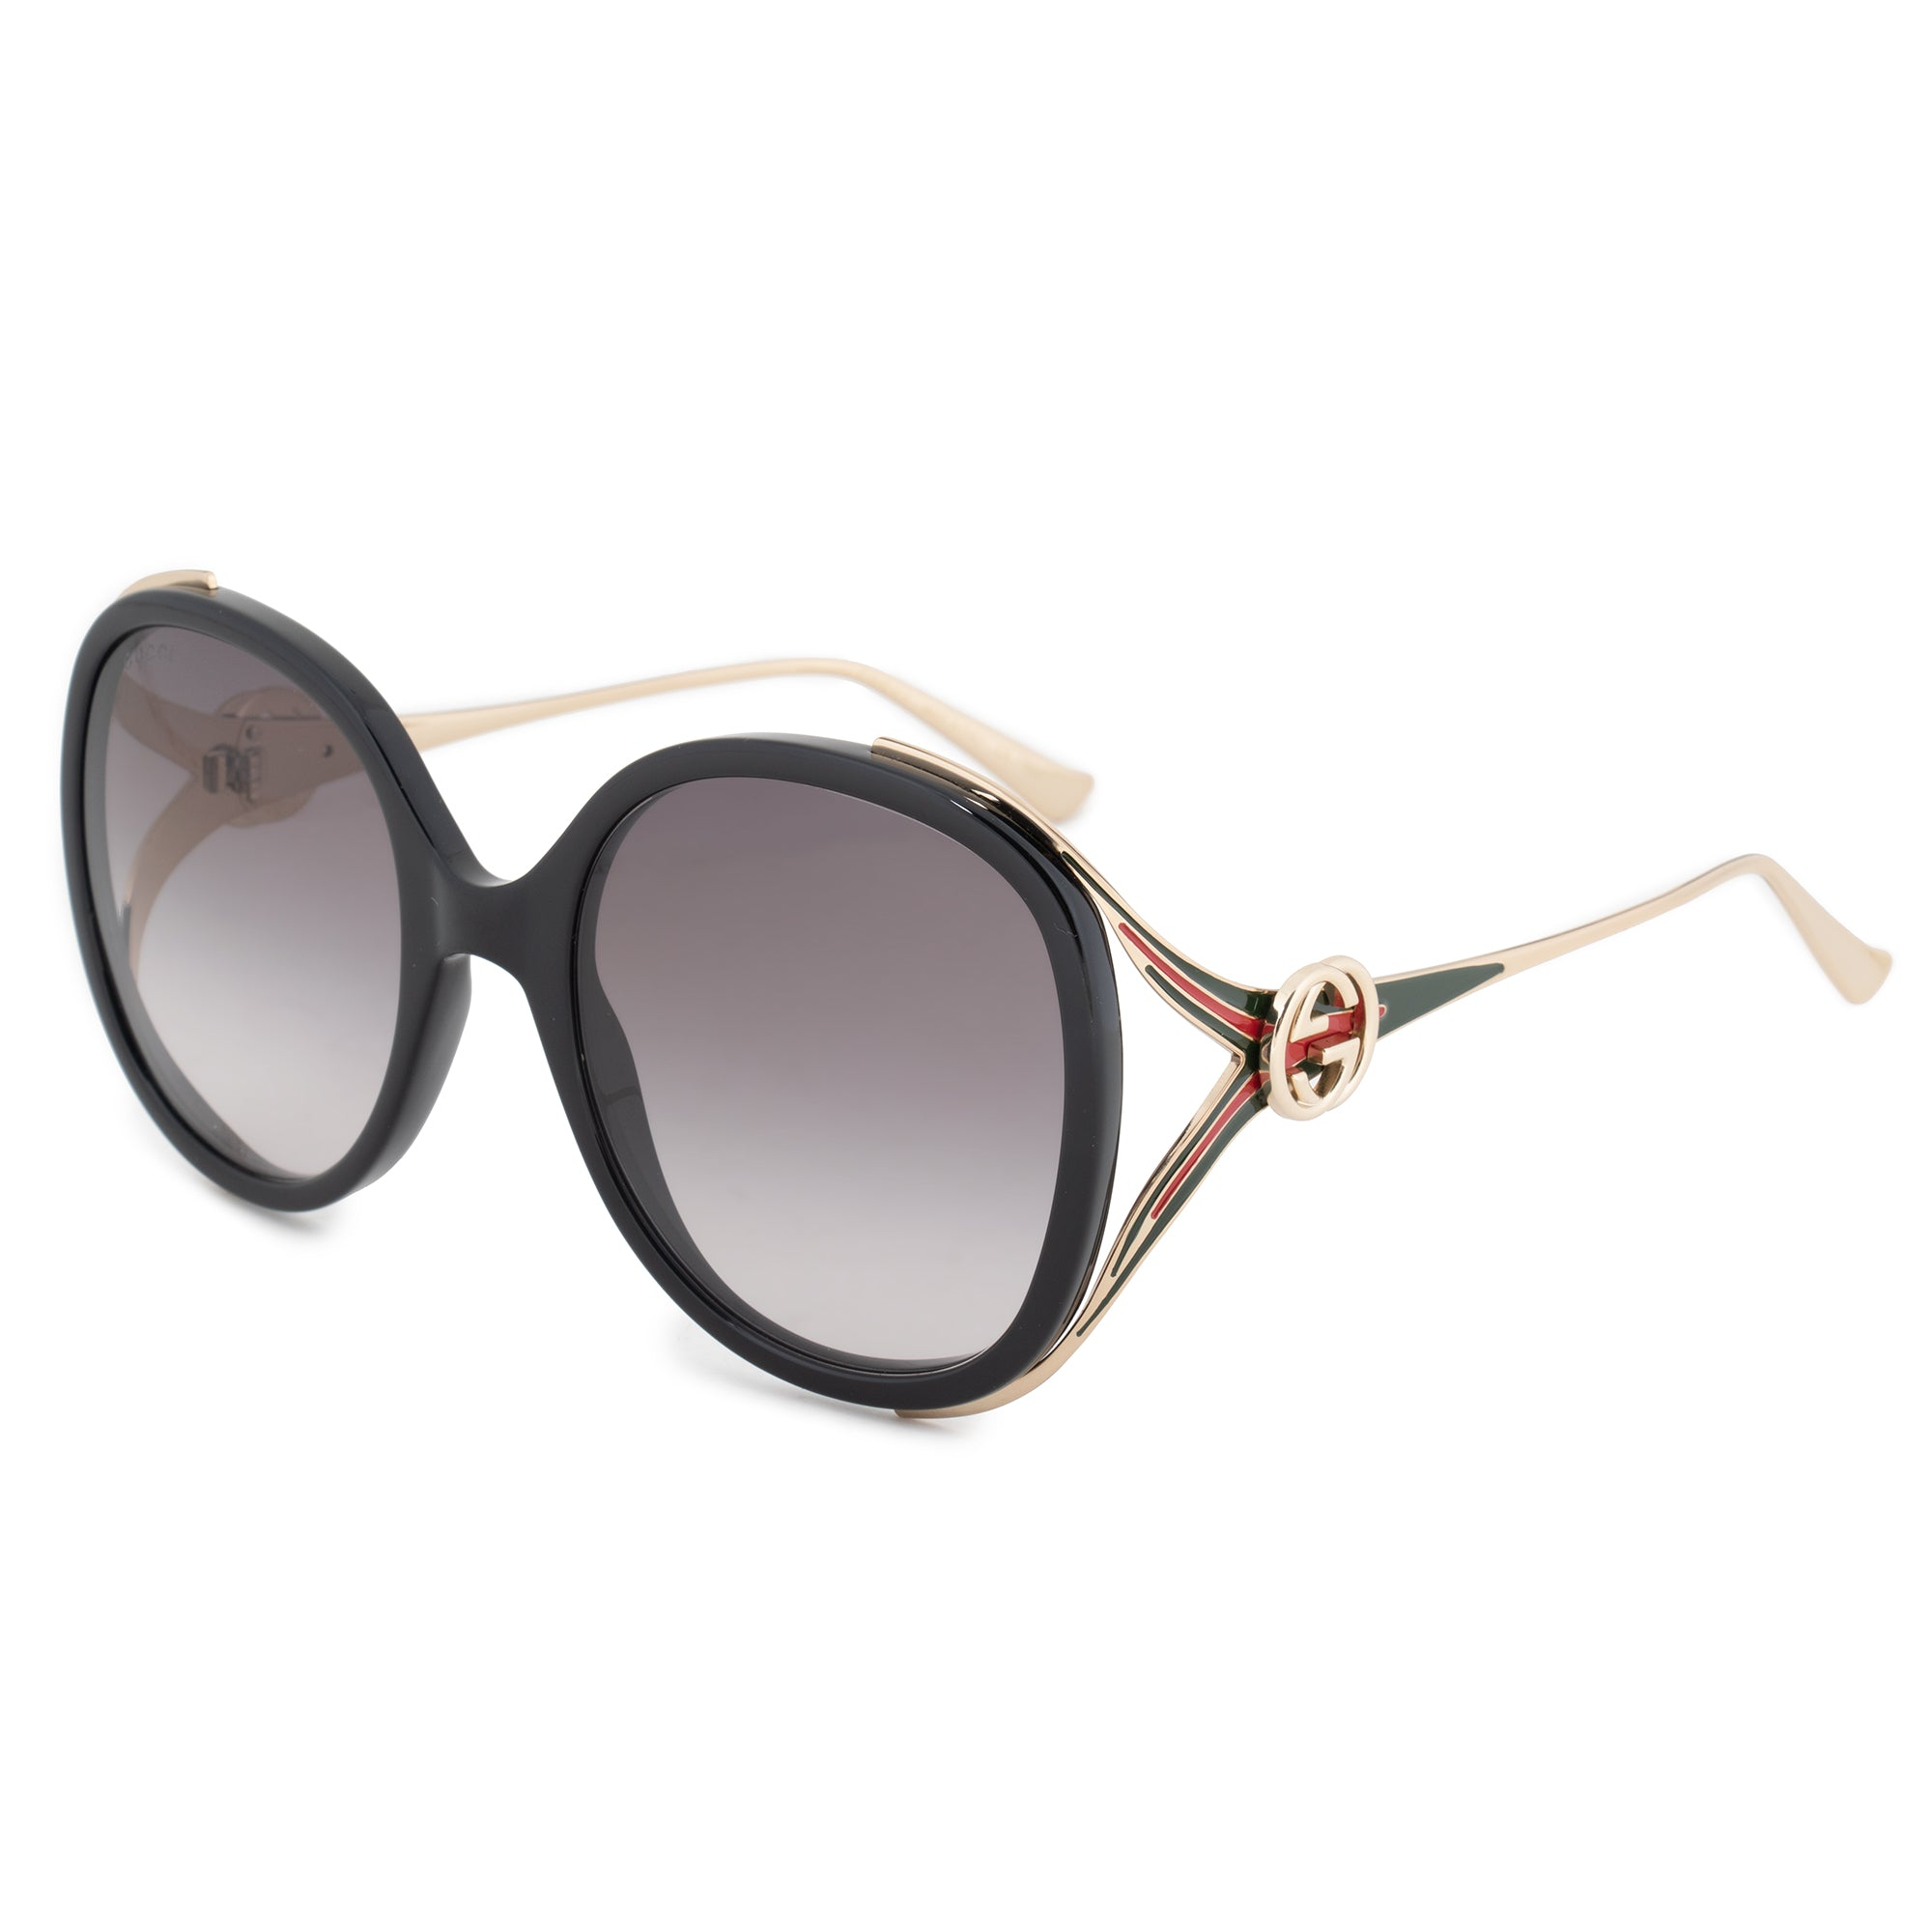 Gucci Butterfly Sunglasses GG0226S 001 56